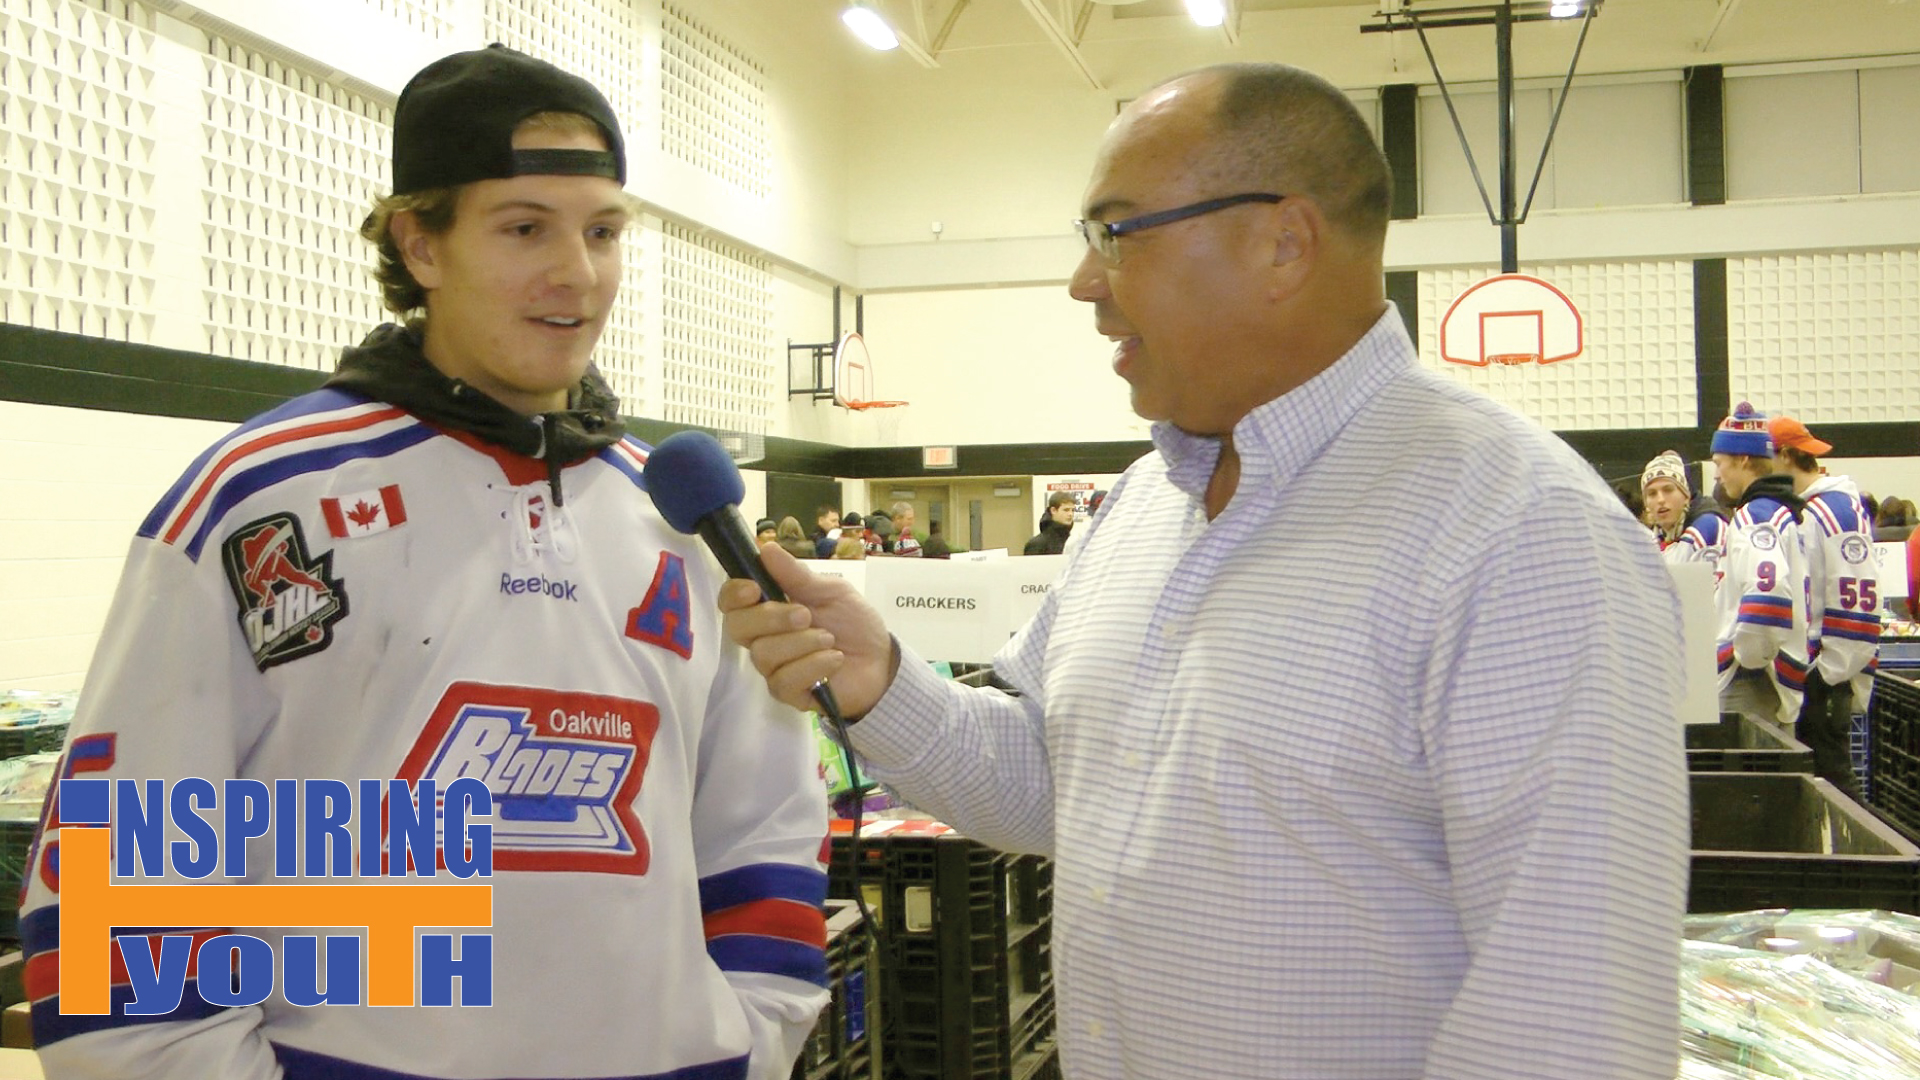 Inspiring Youth TV: Beginning a Career in Hockey